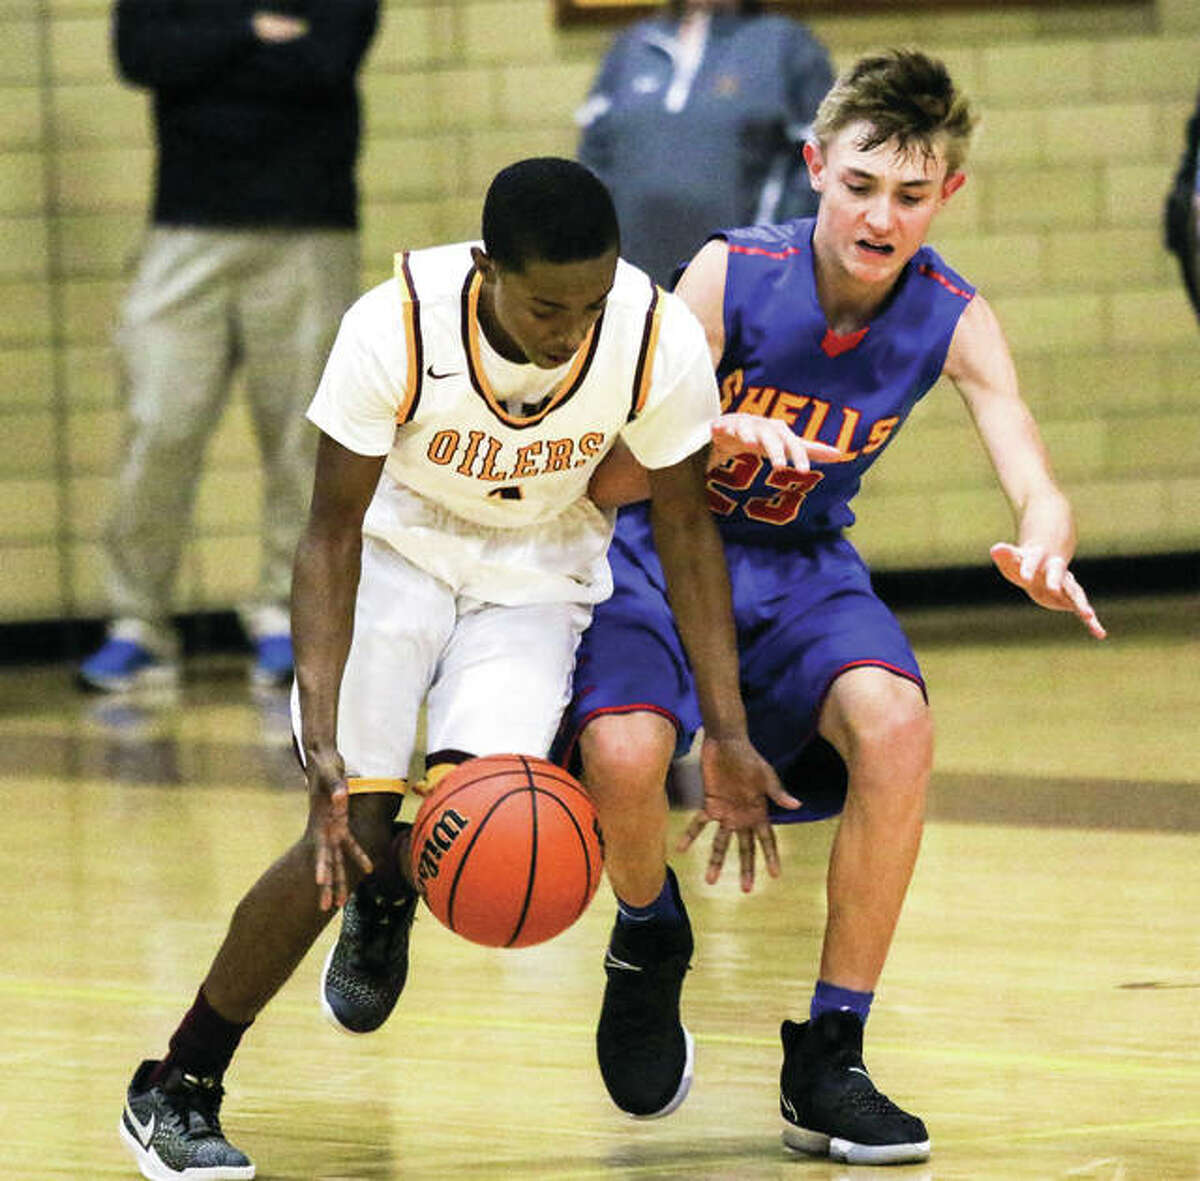 EA-WR's Tavion Walker (left) beats Roxana's Gavin Huffman to the ball during a game Dec. 8 at Memorial Gym in Wood River. The Shells, who open holiday tourney play at the Duster Thomas Classic in Pinckneyville on Friday, are 2-7 in a rebuilding season that has freshman playing major roles.